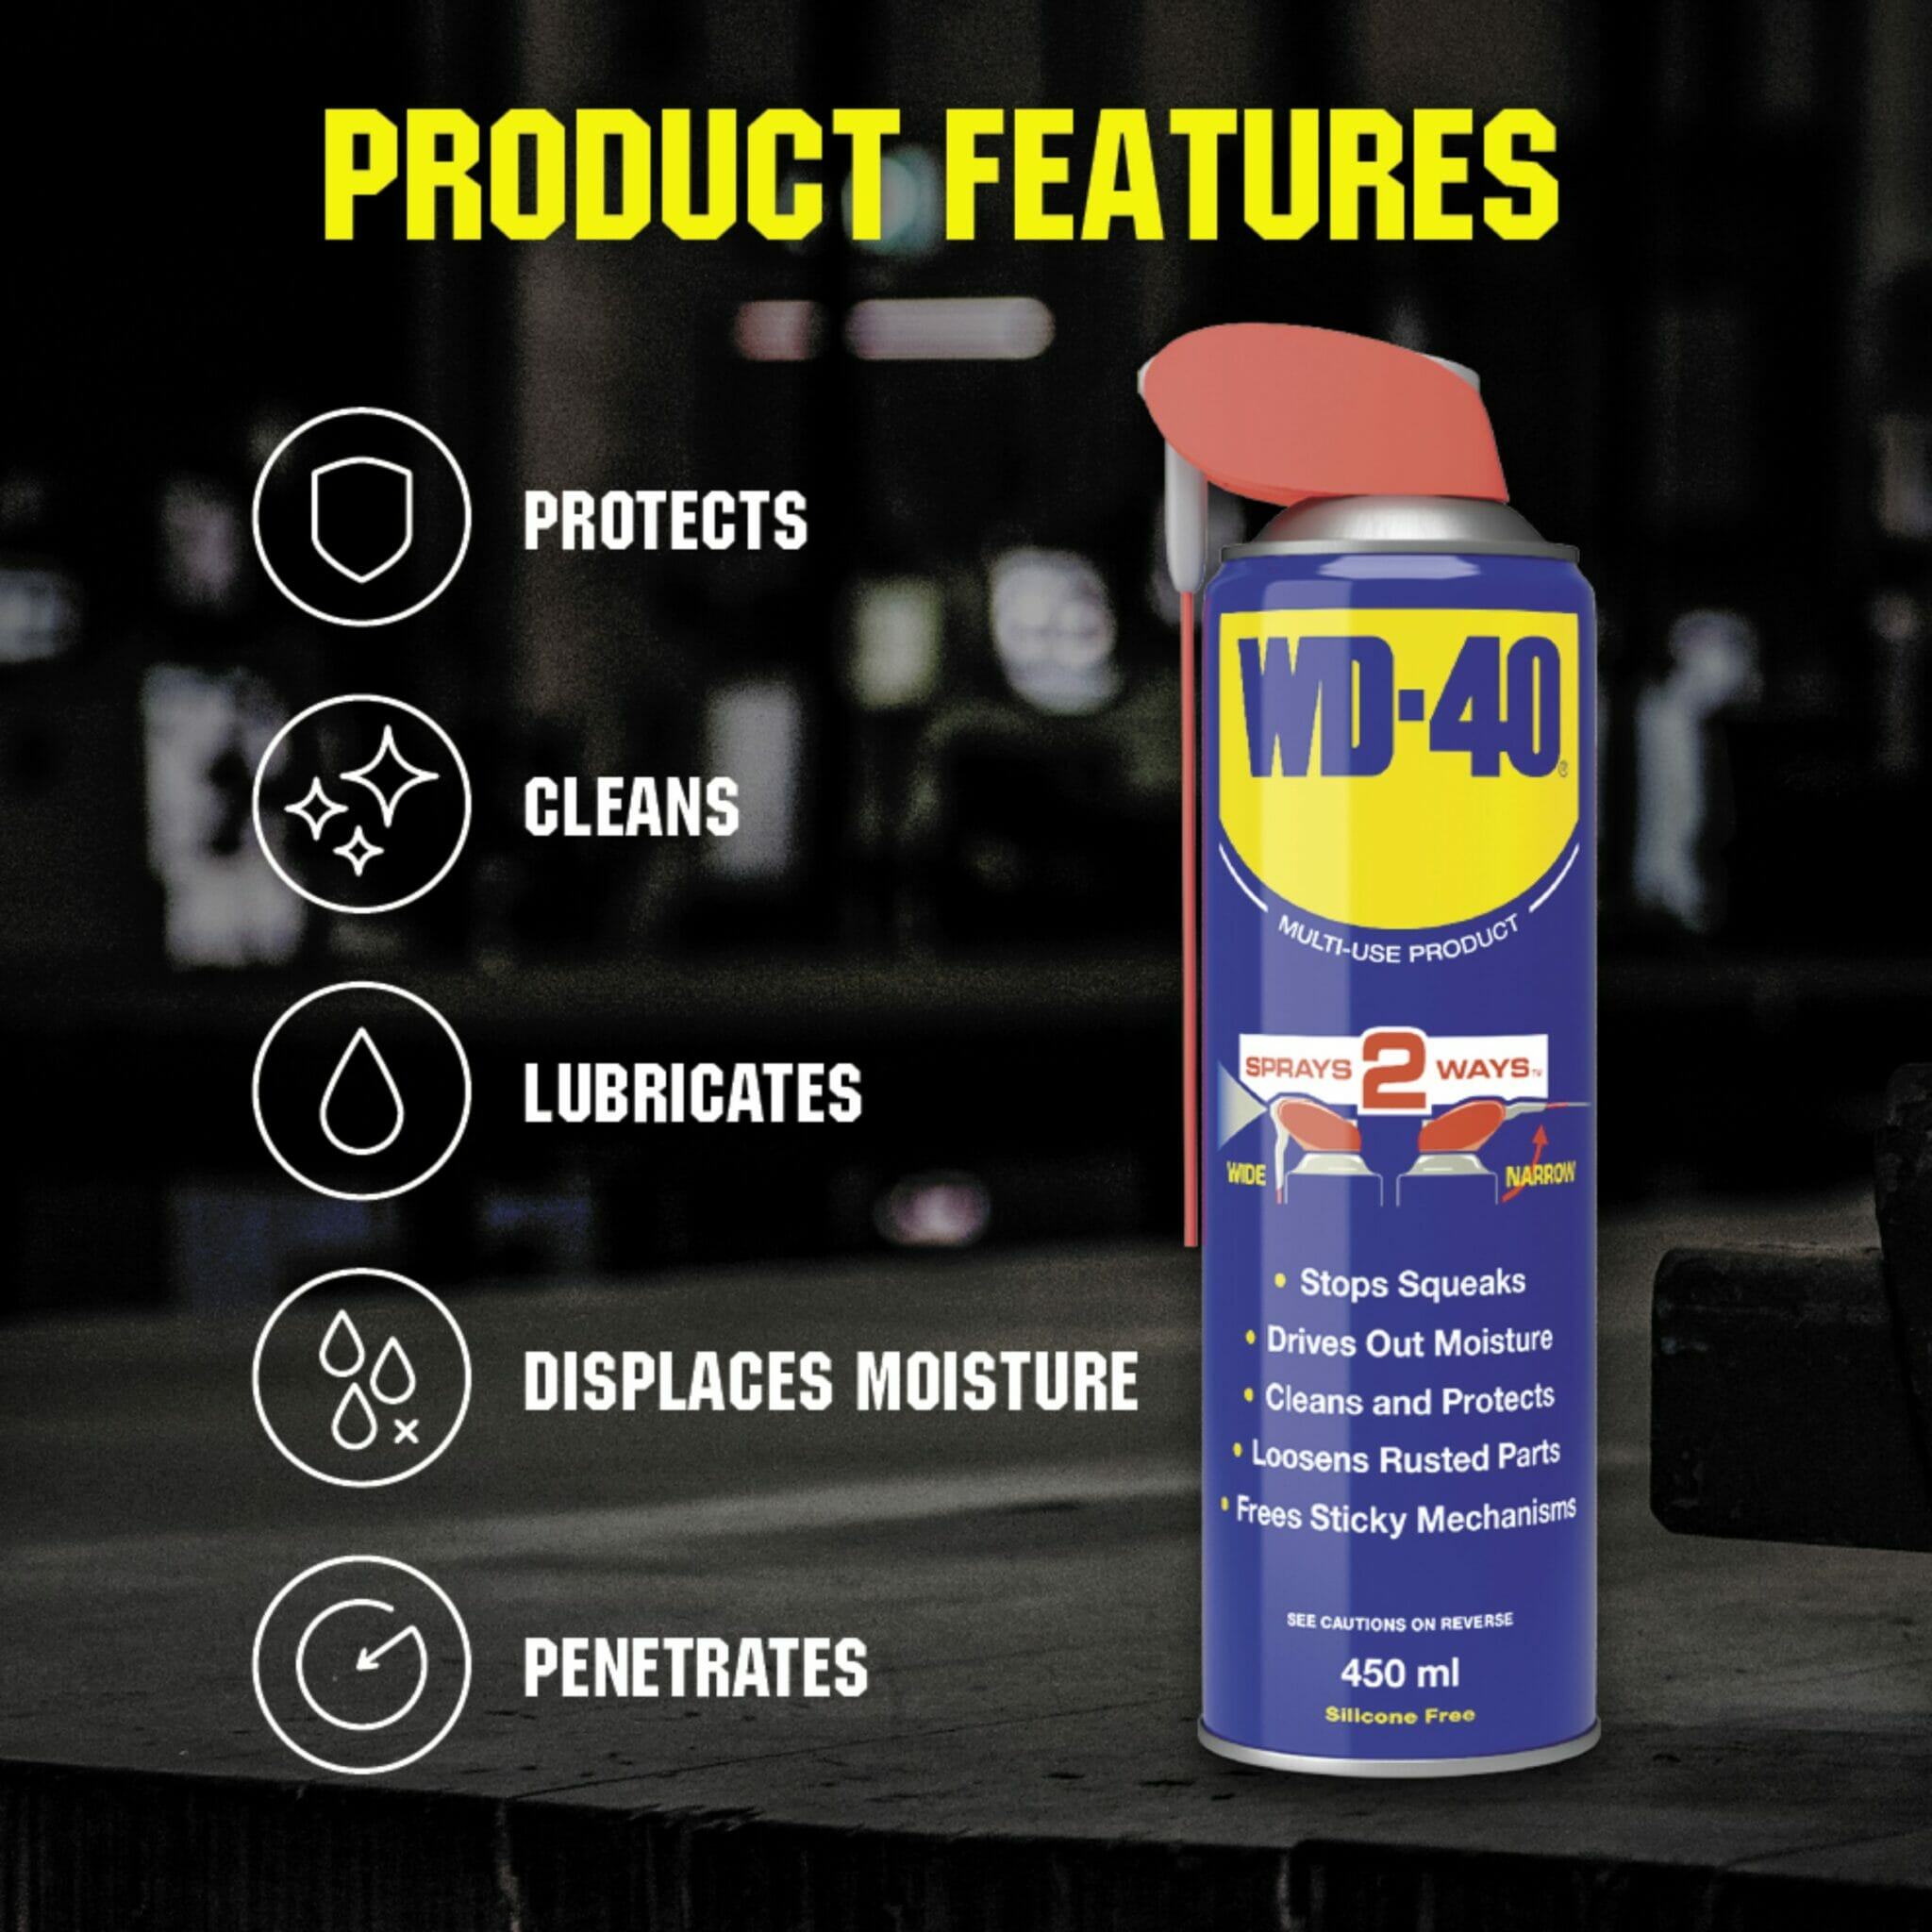 uk wd40 mup smart straw 450ml product features lifestyle background